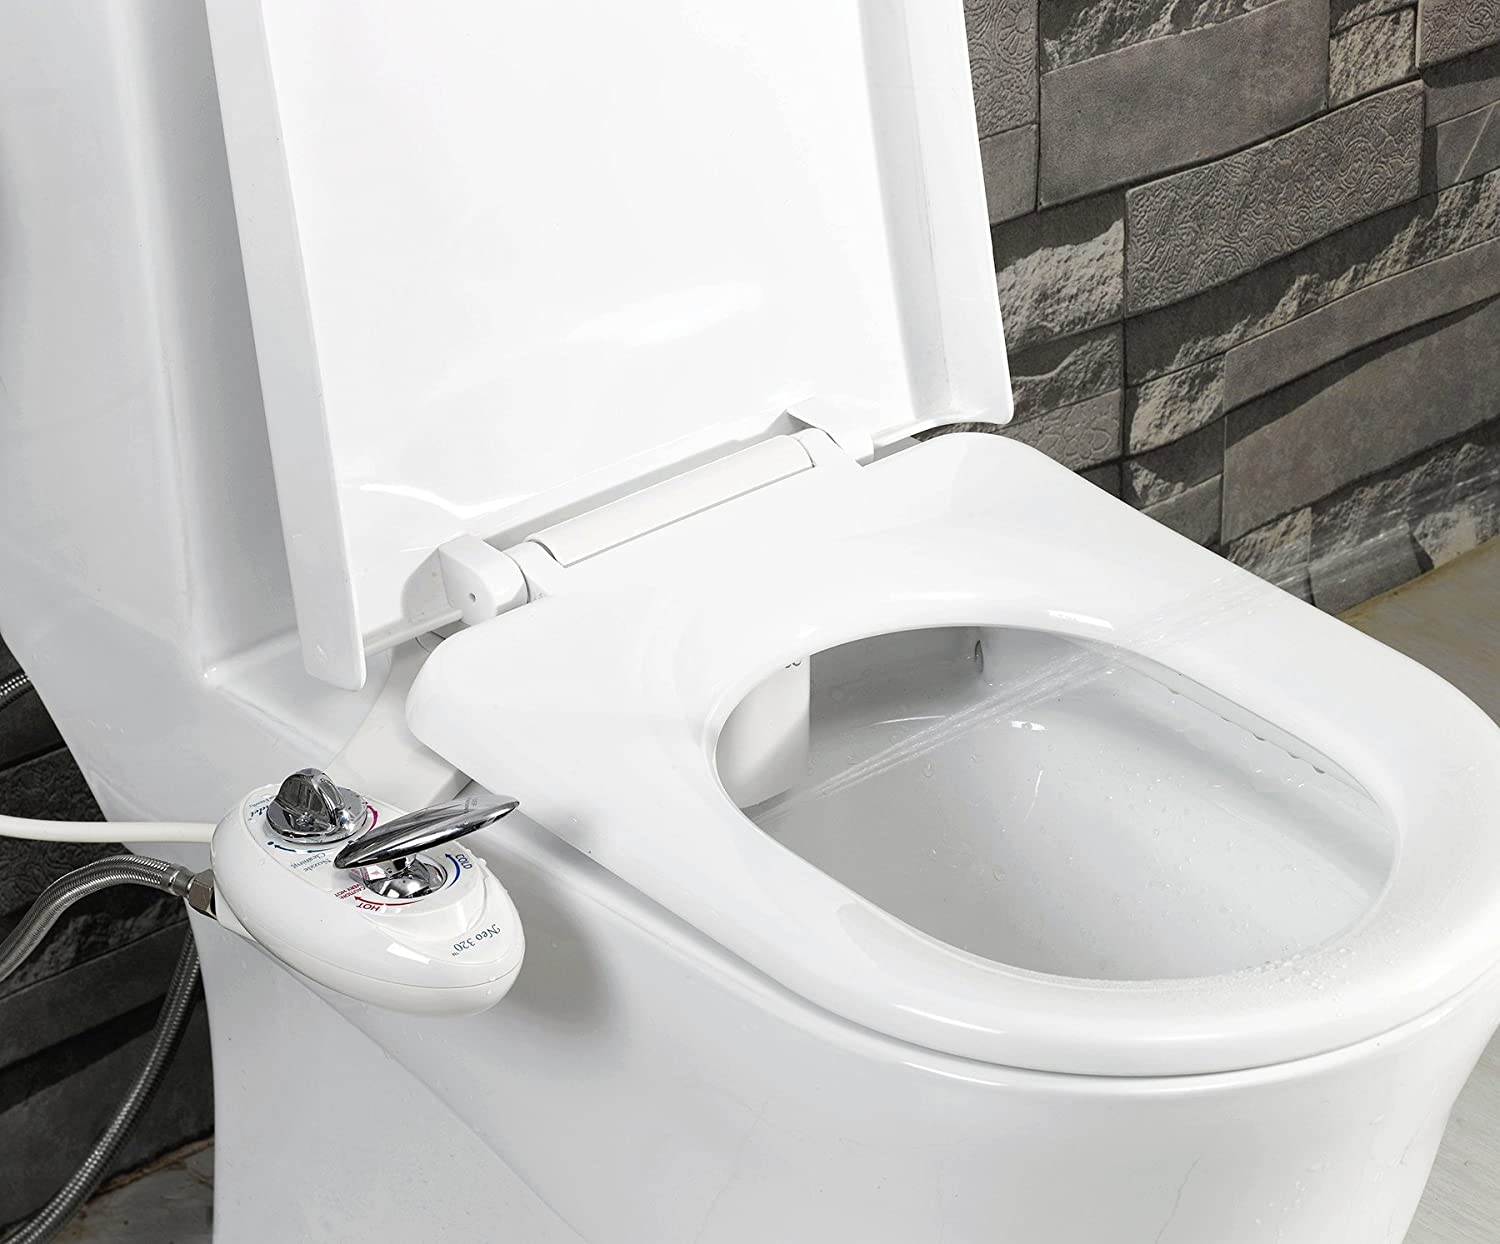 Luxe Bidet Neo 320 Self Cleaning Dual Nozzle Hot And Cold Water